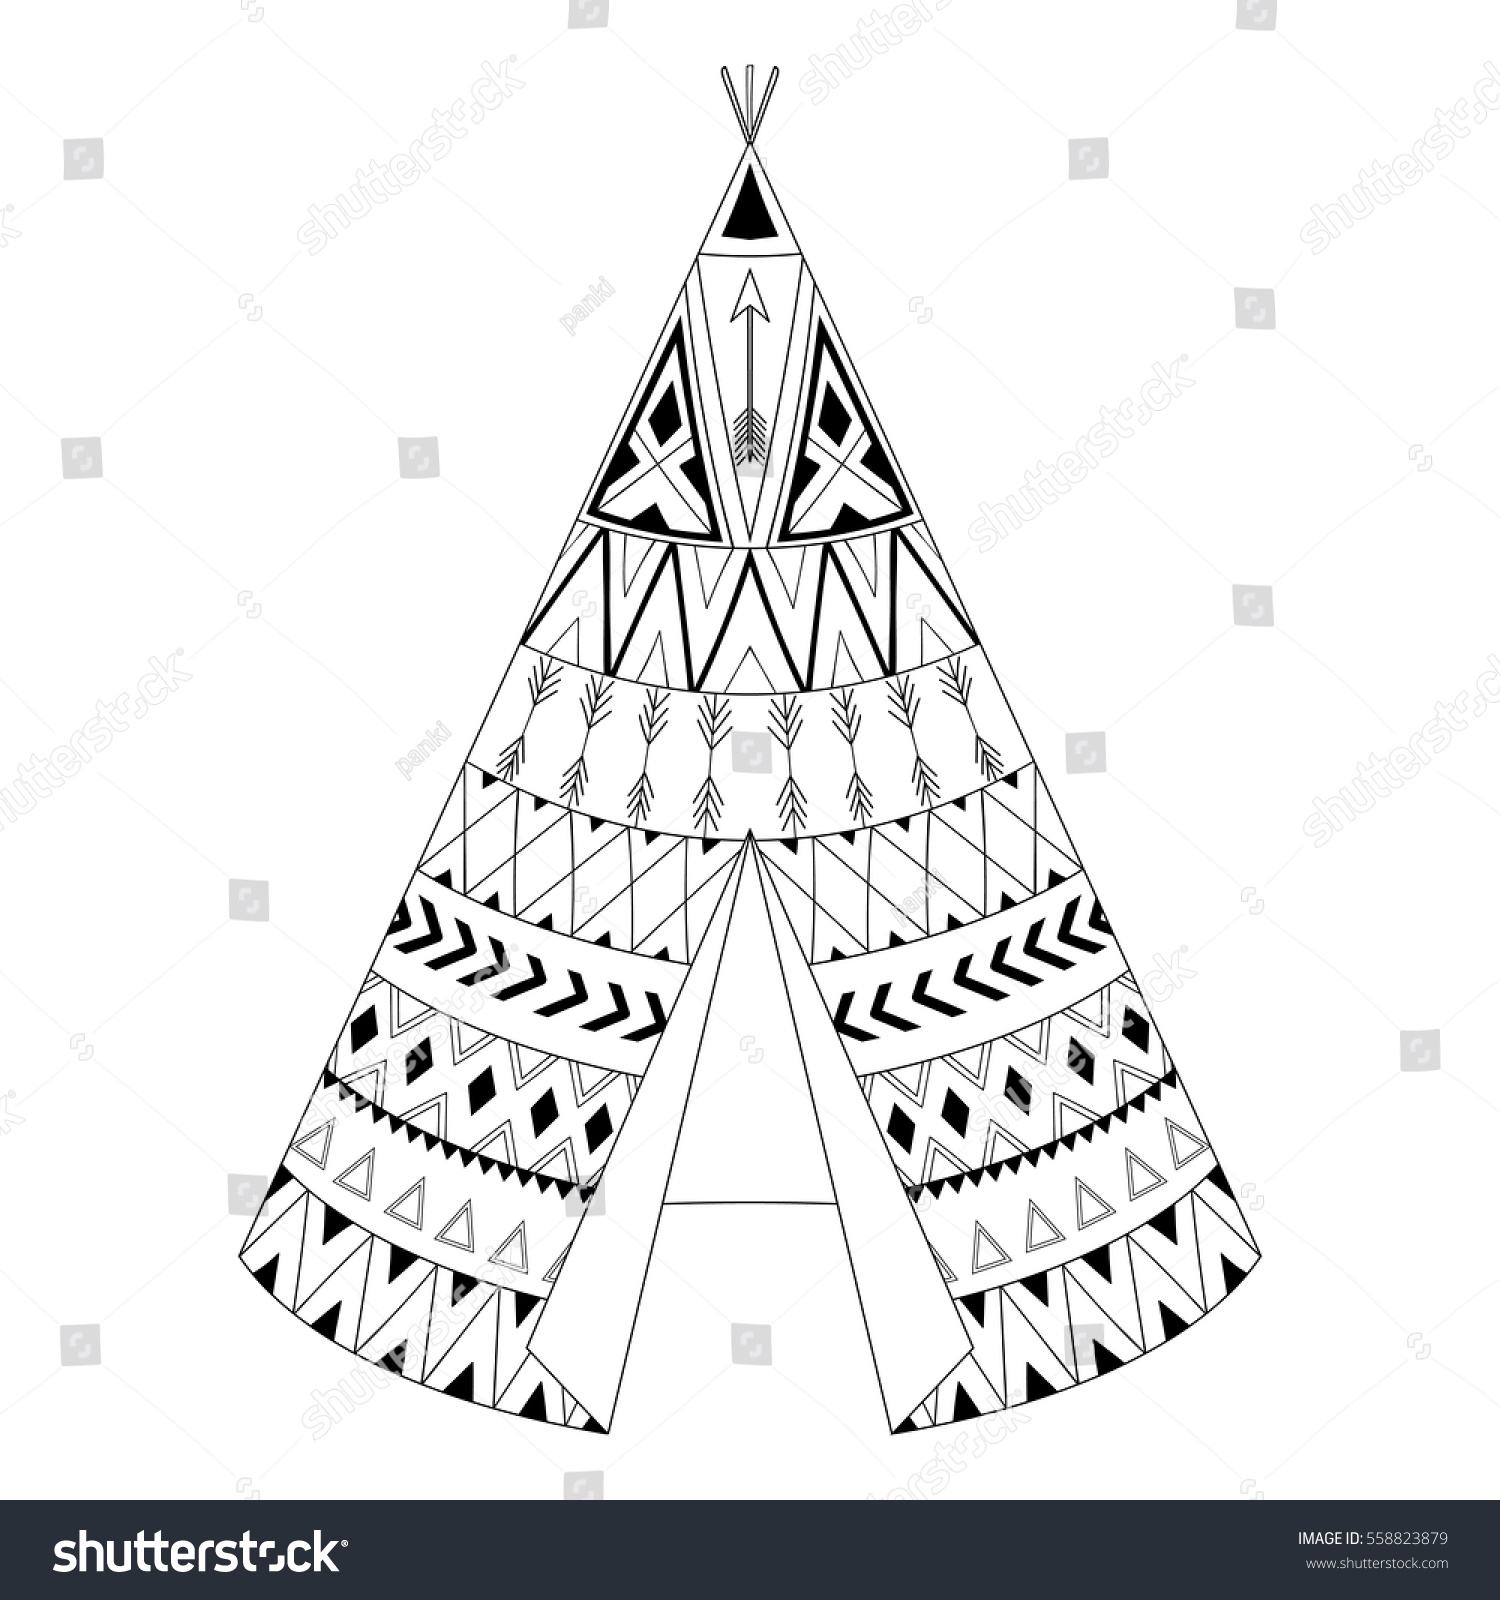 indian teepee coloring pages - hand drawn american native wigwam ethnic stock vector